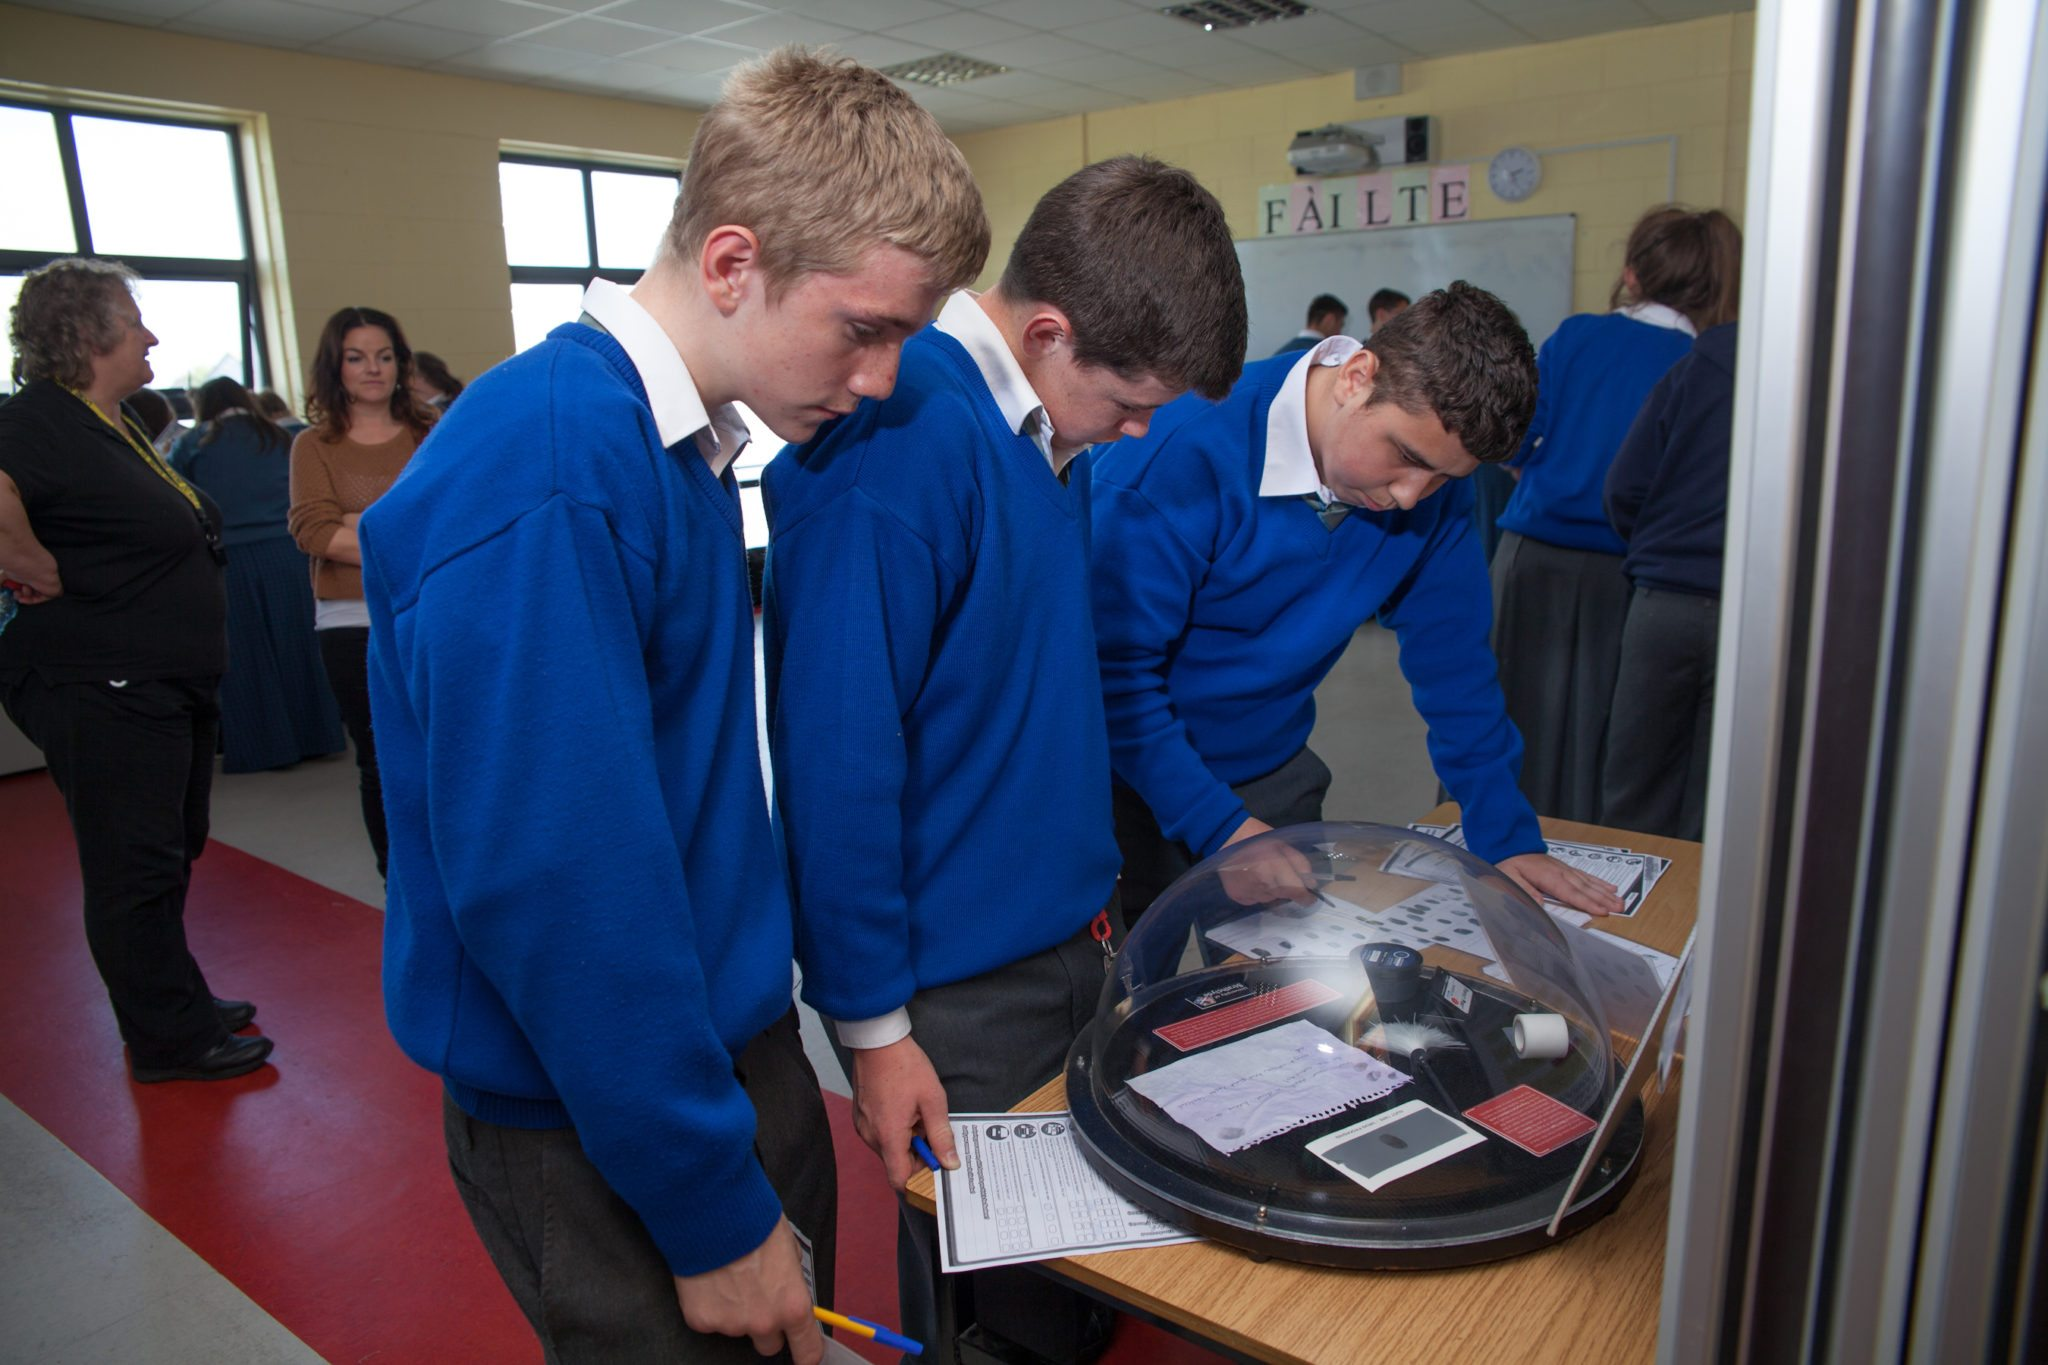 Desmond College Forensic Science Day : October 2014